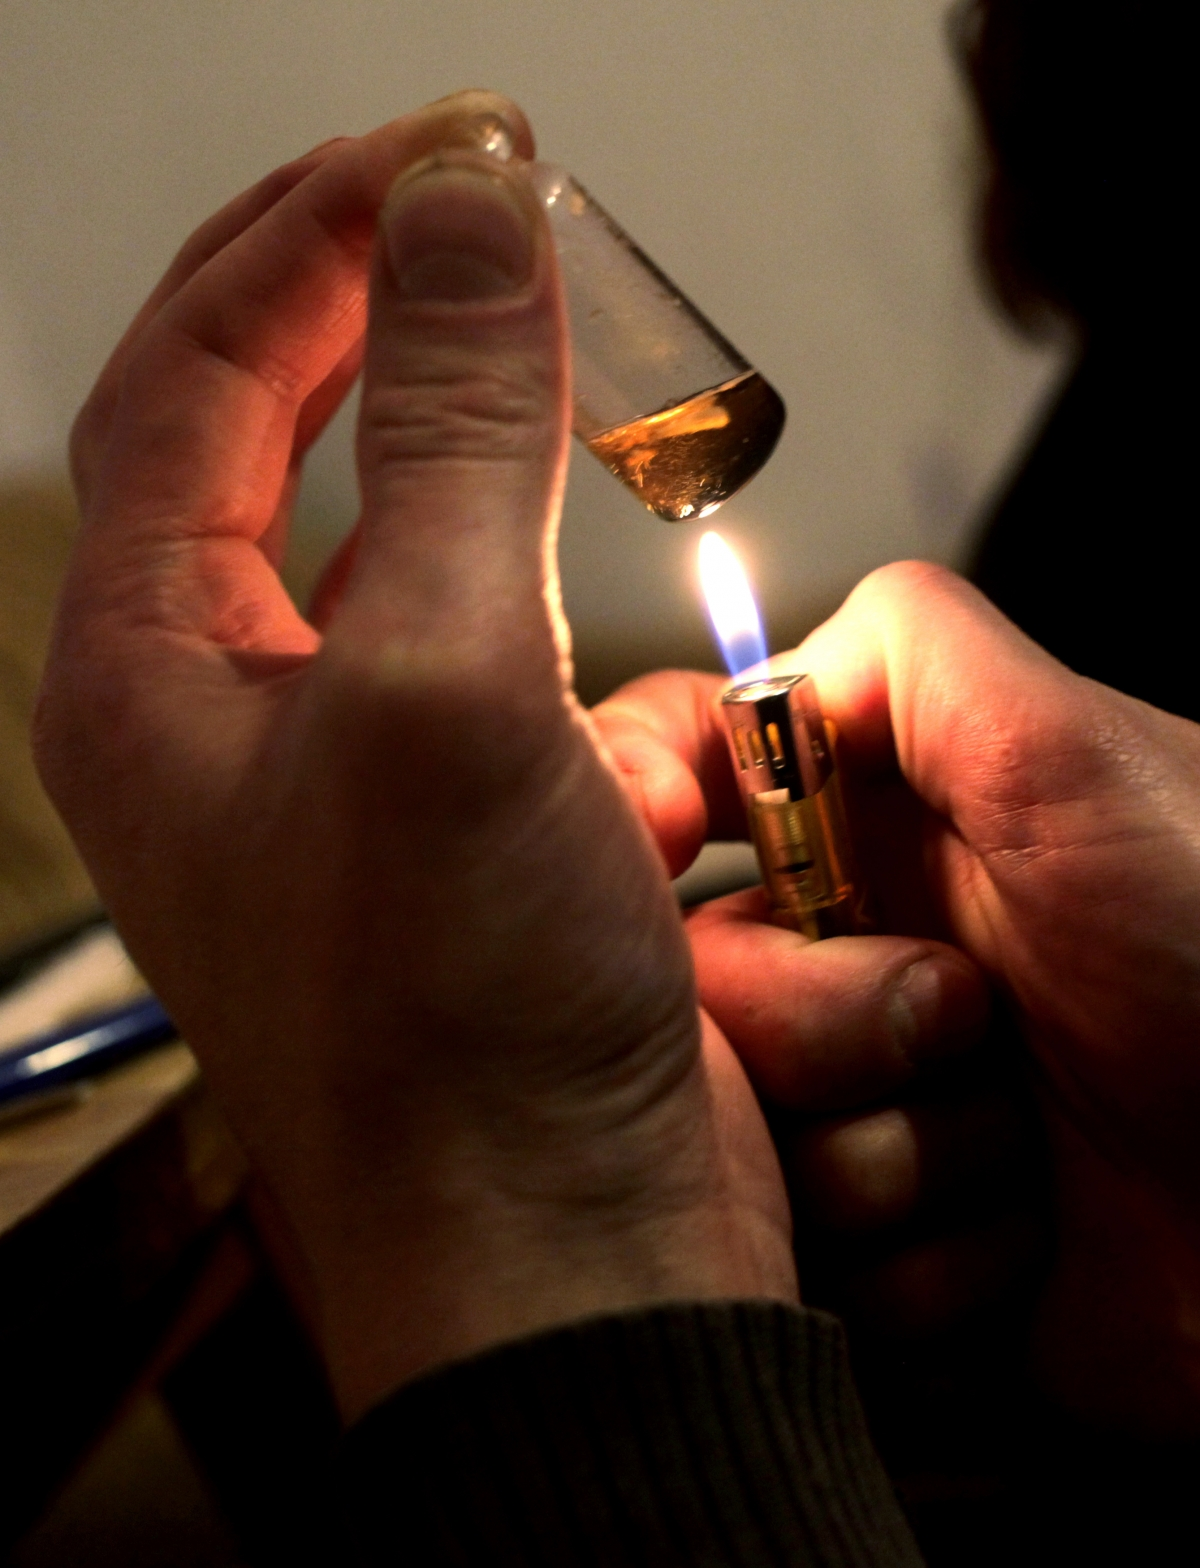 A man prepares heroin for in injection